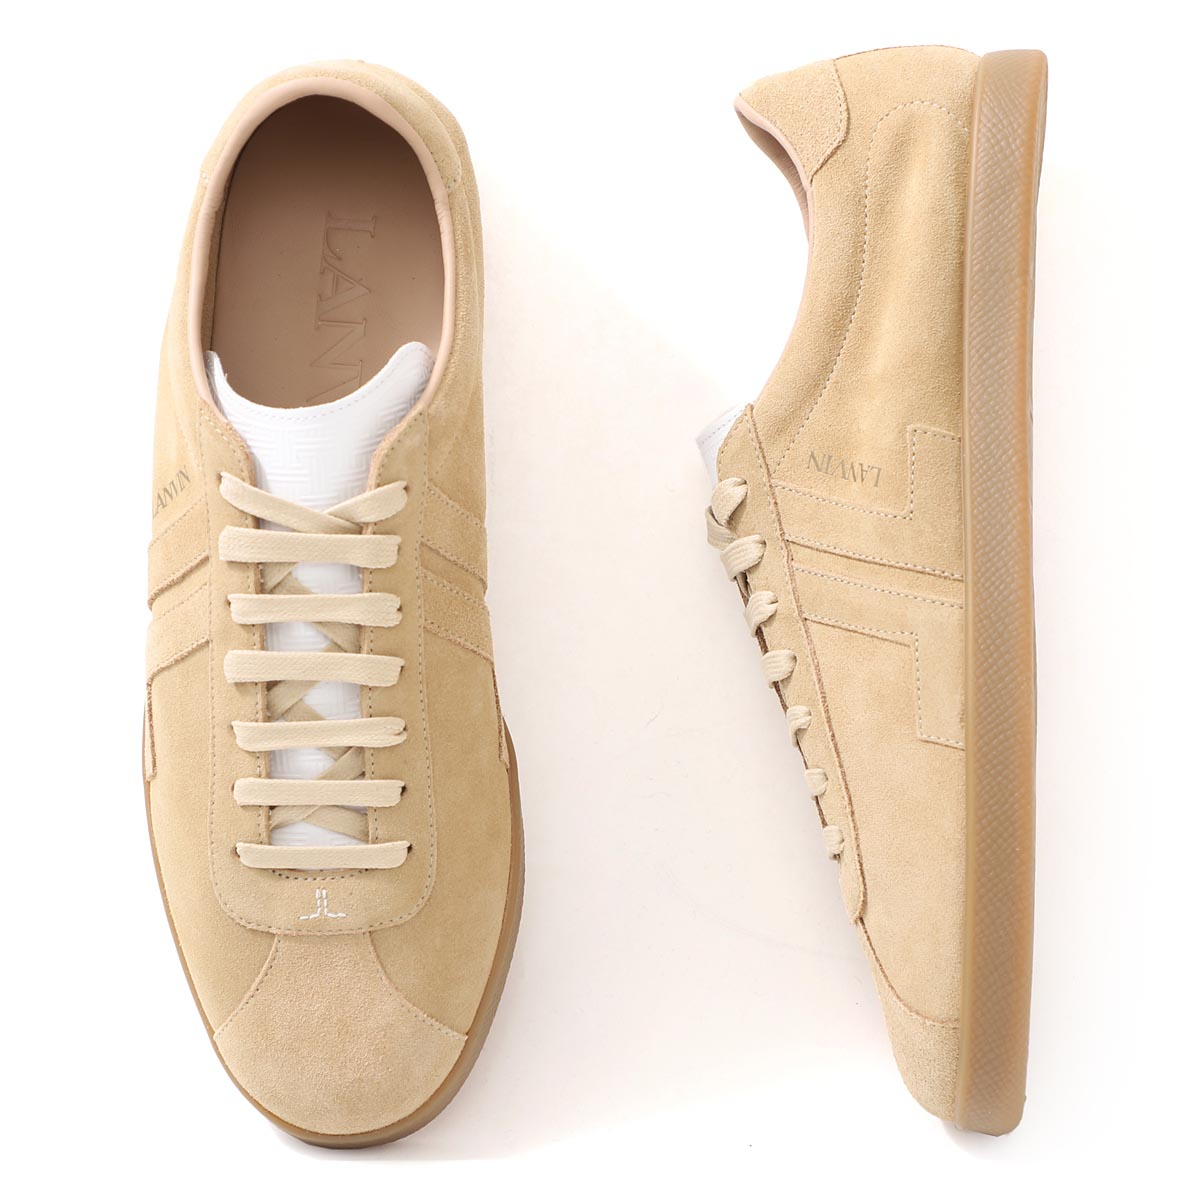 メンズ靴, スニーカー  LANVIN fm skdlon vesu a20 05 SUEDE GLEN LOW TOP SNEAKERS